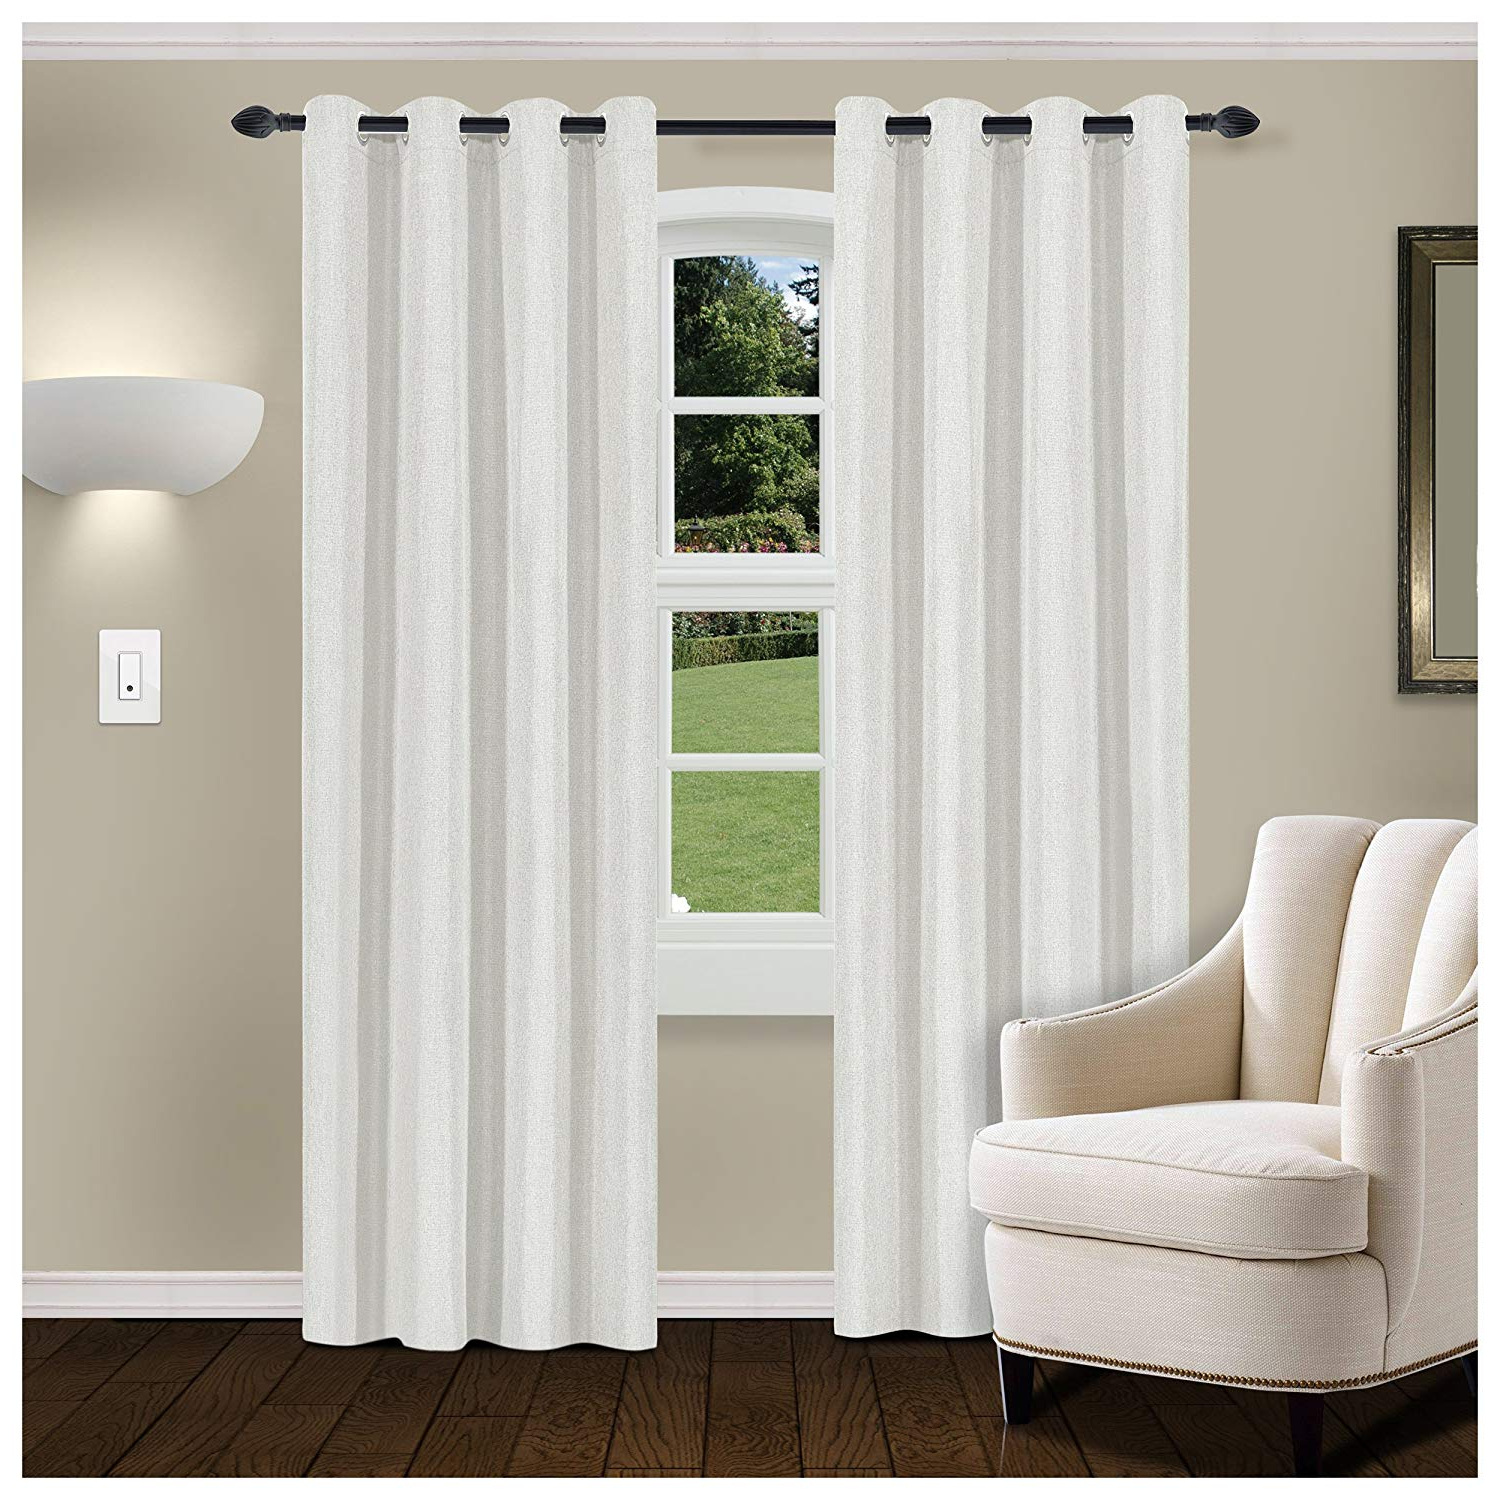 Superior Solid Insulated Thermal Blackout Grommet Curtain Panel Pairs Inside Favorite Superior Linen Textured Blackout Curtain Set Of 2, Thermal Insulated Panel Pair With Grommet Top Header, Classic Natural Look Room Darkening Drapes, (View 10 of 20)